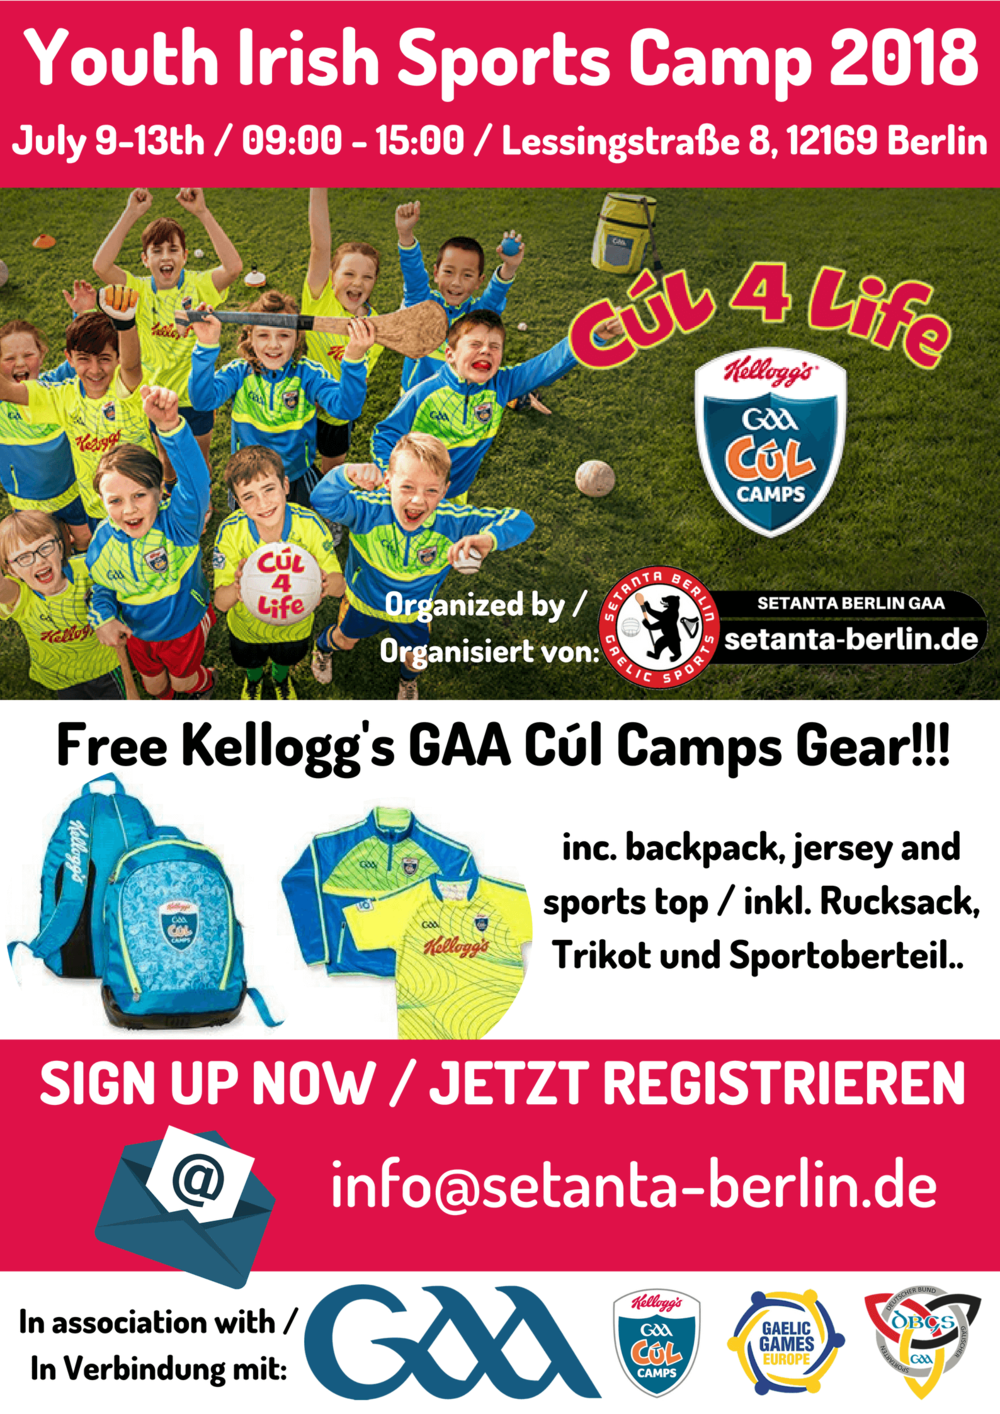 Youth Irish Sports Camp compressed.png